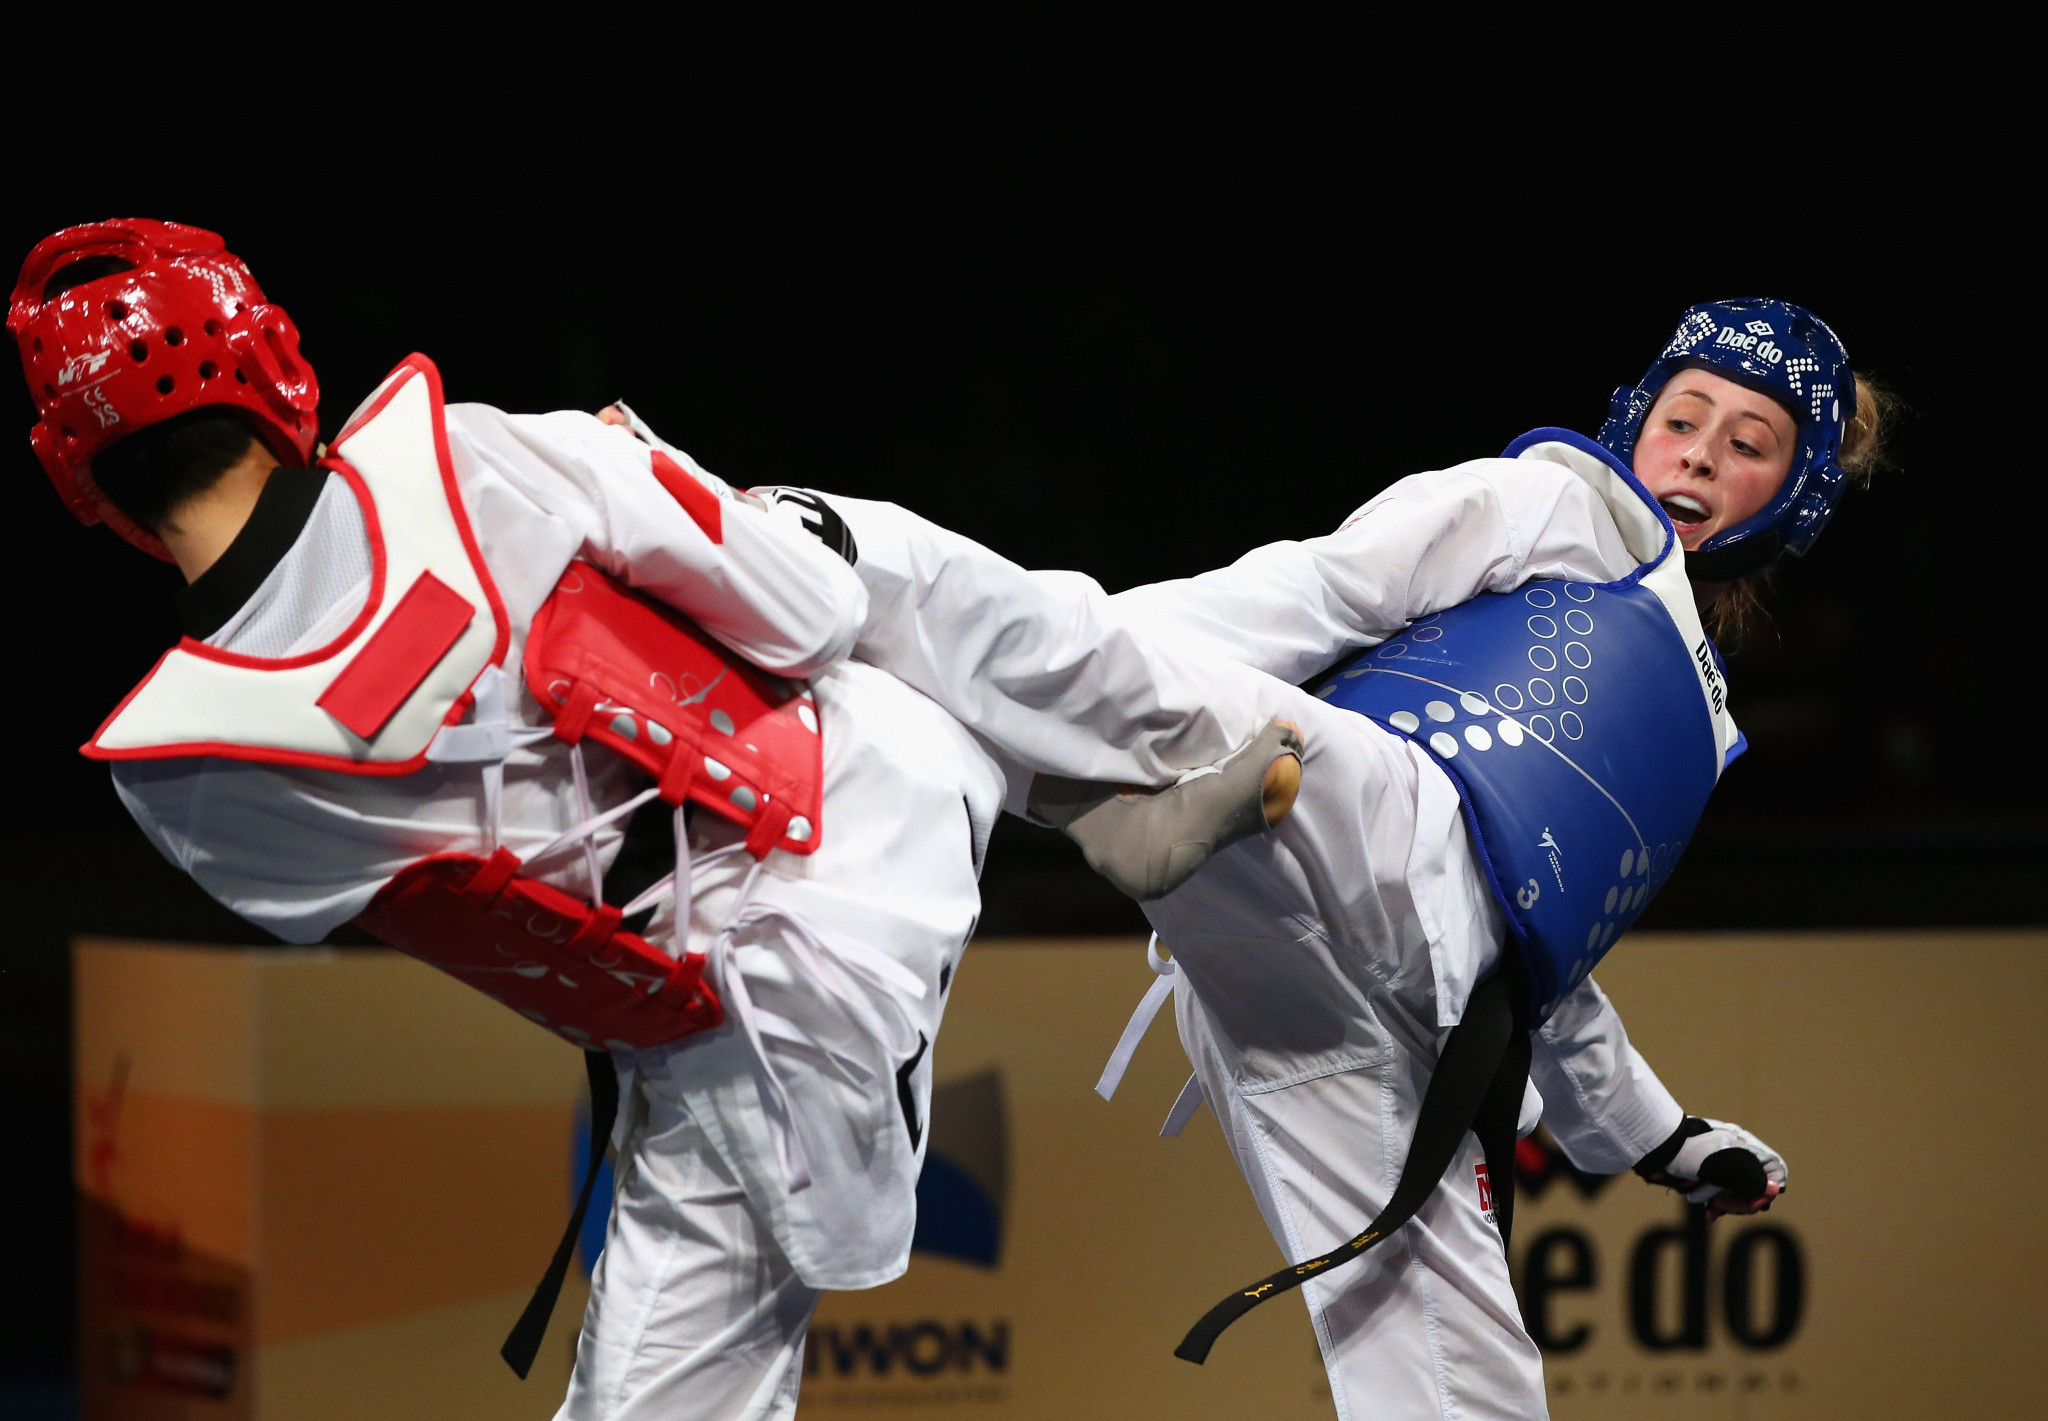 Double Olympic champion Jade Jones will be looking to secure a first world title next month ©Getty Images